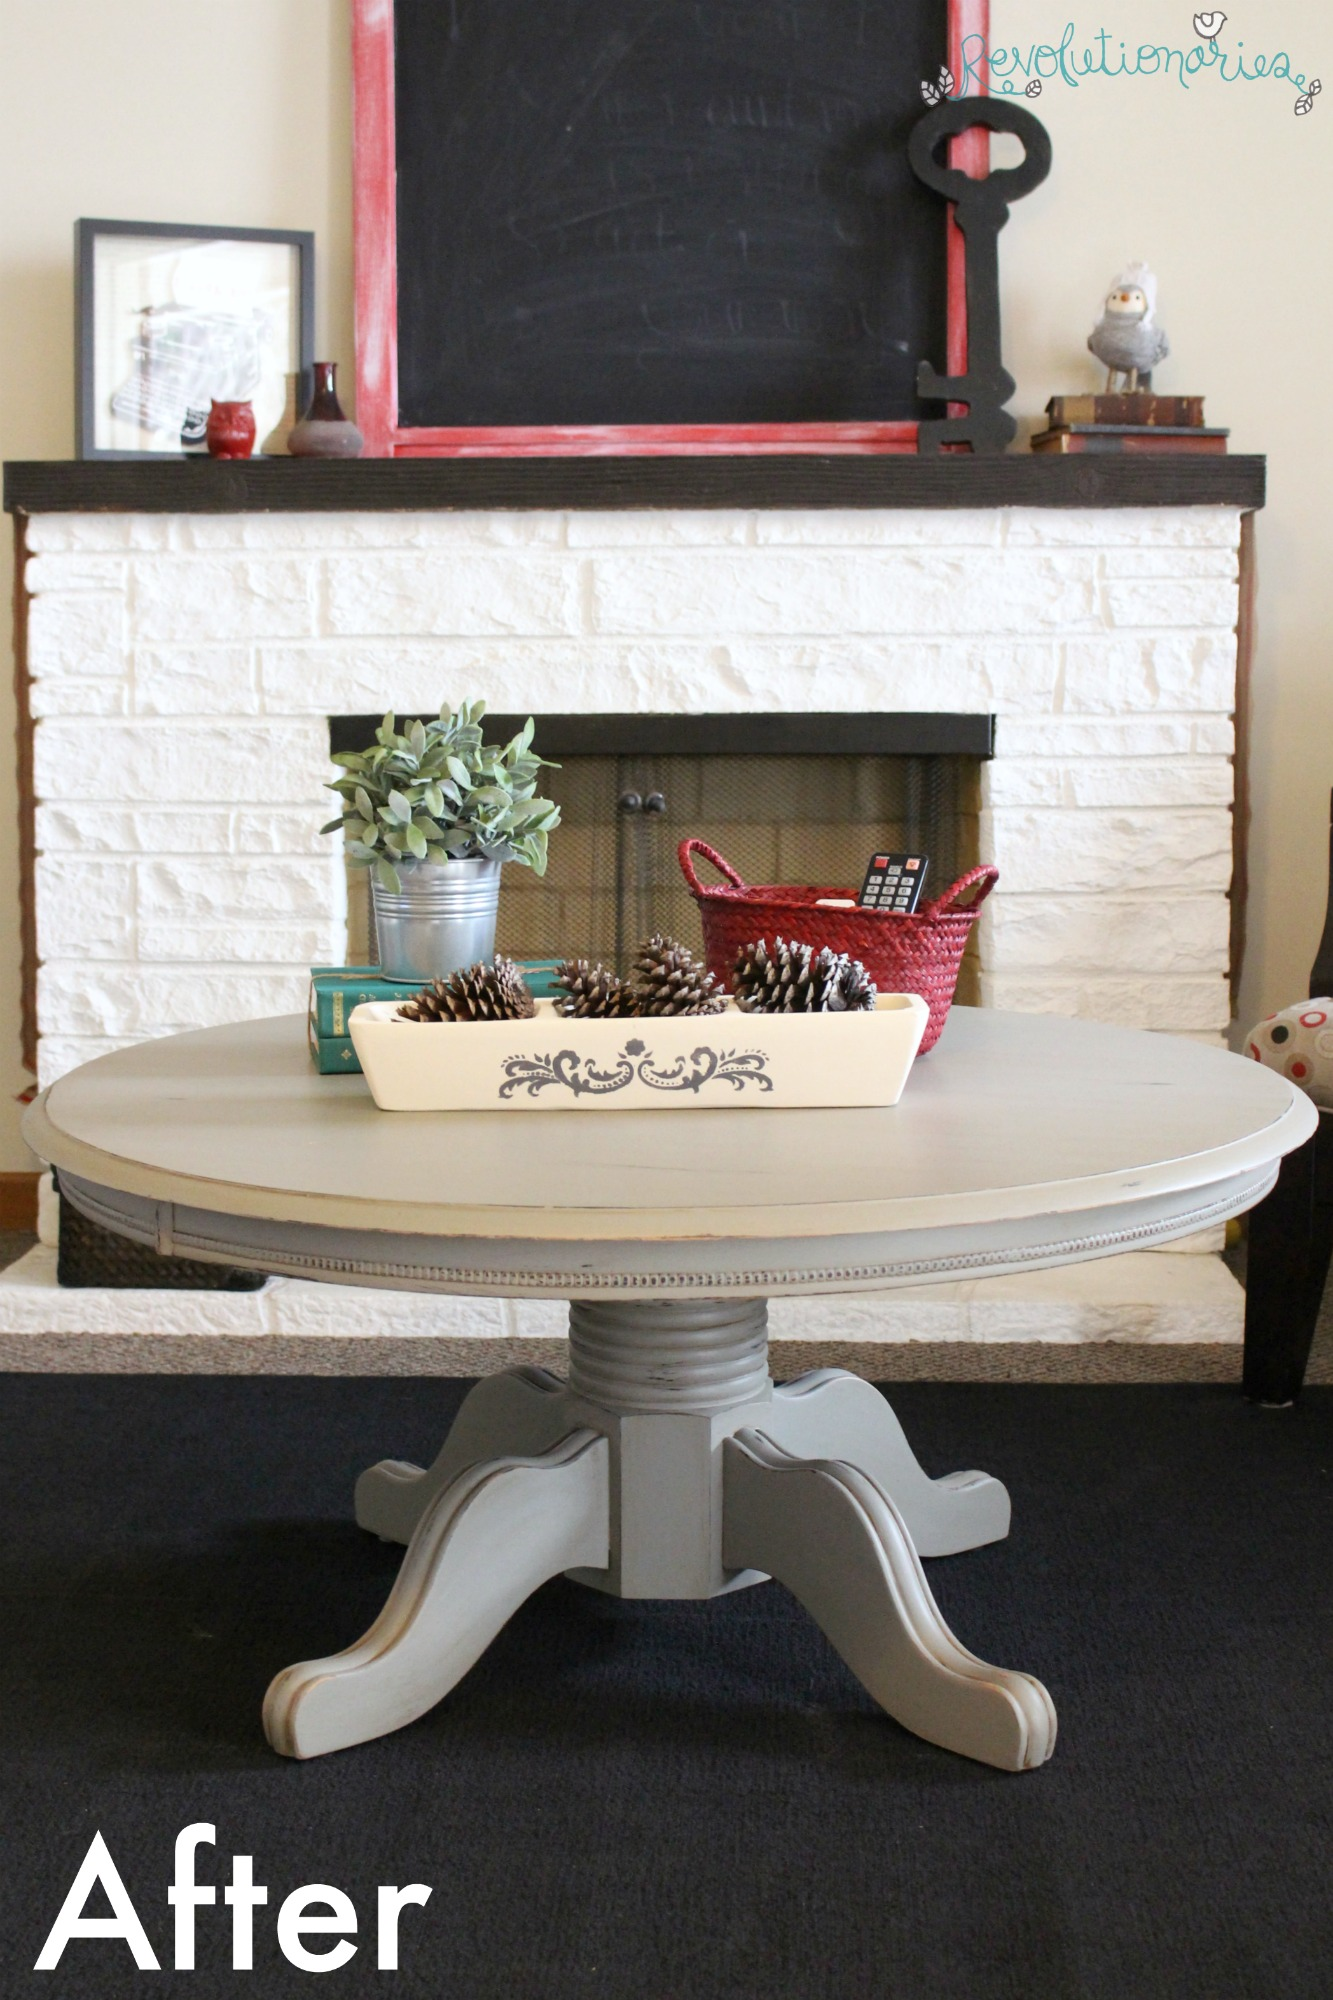 diy-coffee-table-makeover-with-general-finishes-chalk-paint-1.jpg